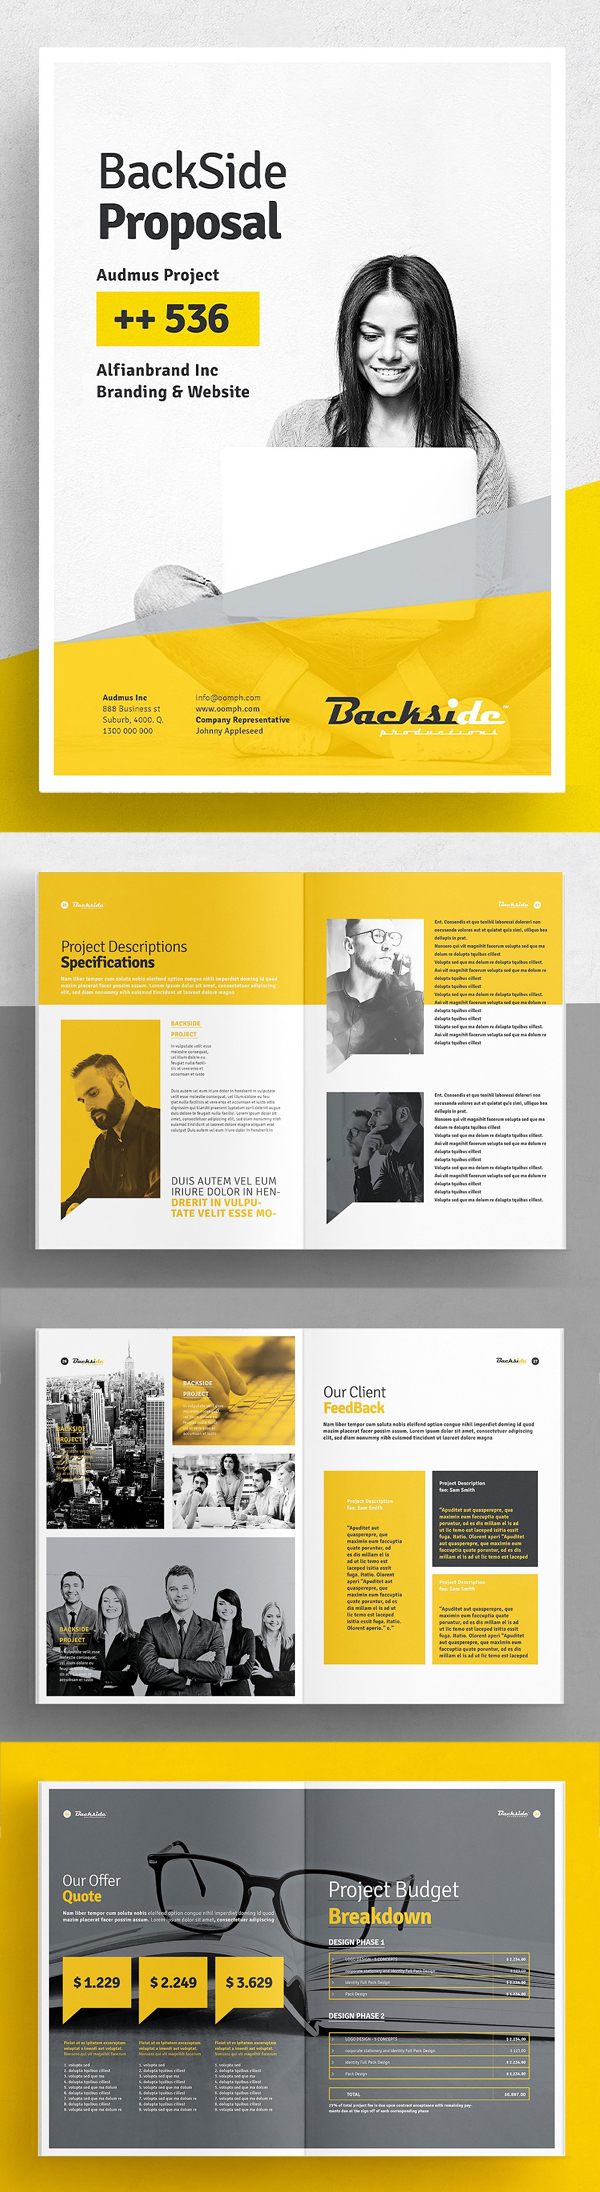 Professional Business Proposal Templates Design - 8